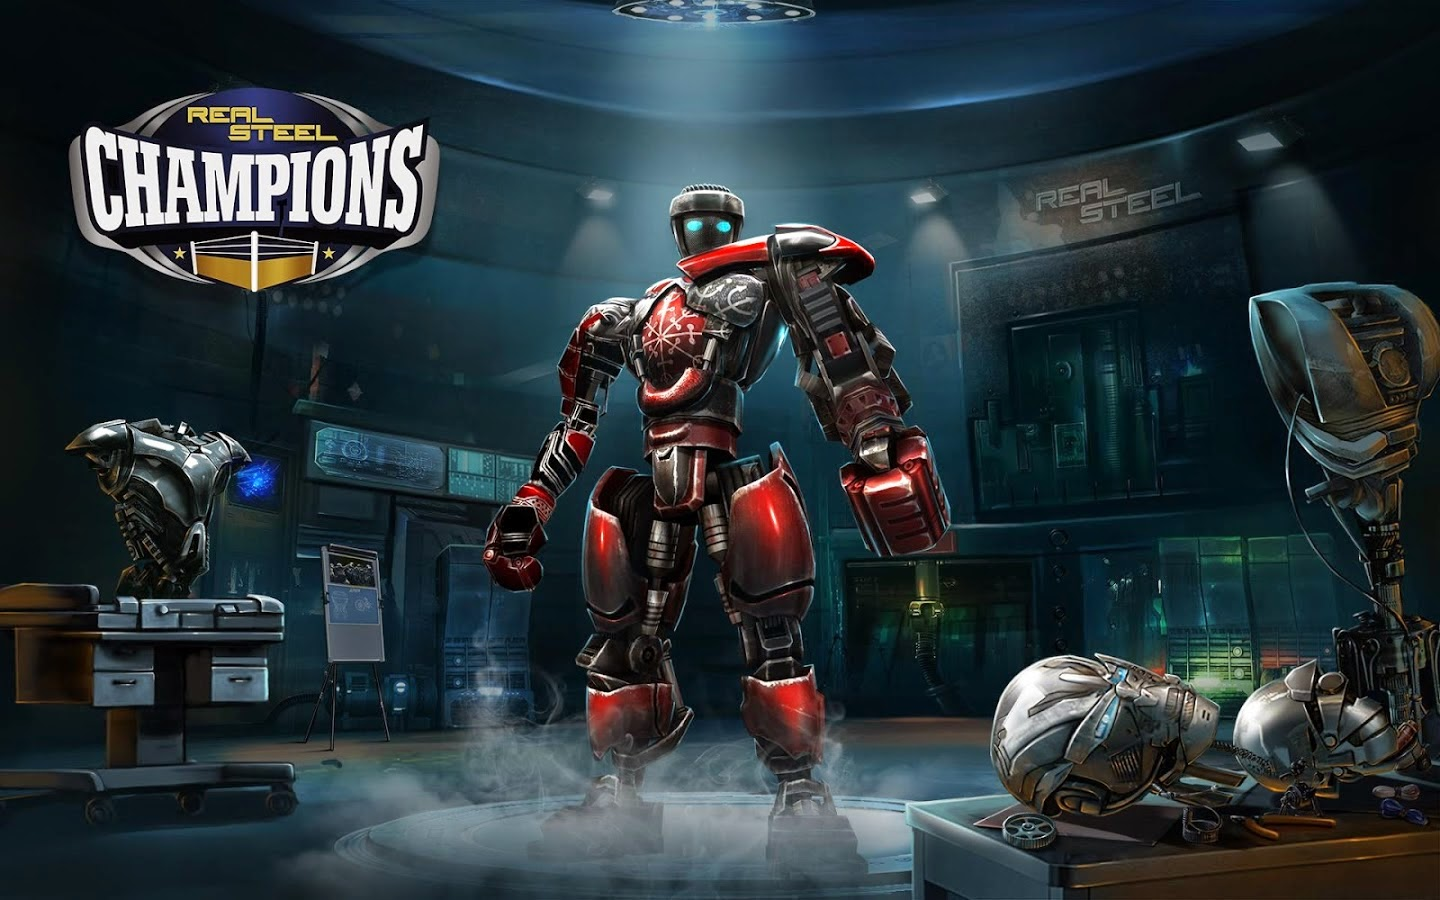 Download Mod Game Real Steel Champions Apk [Unlimited Money]